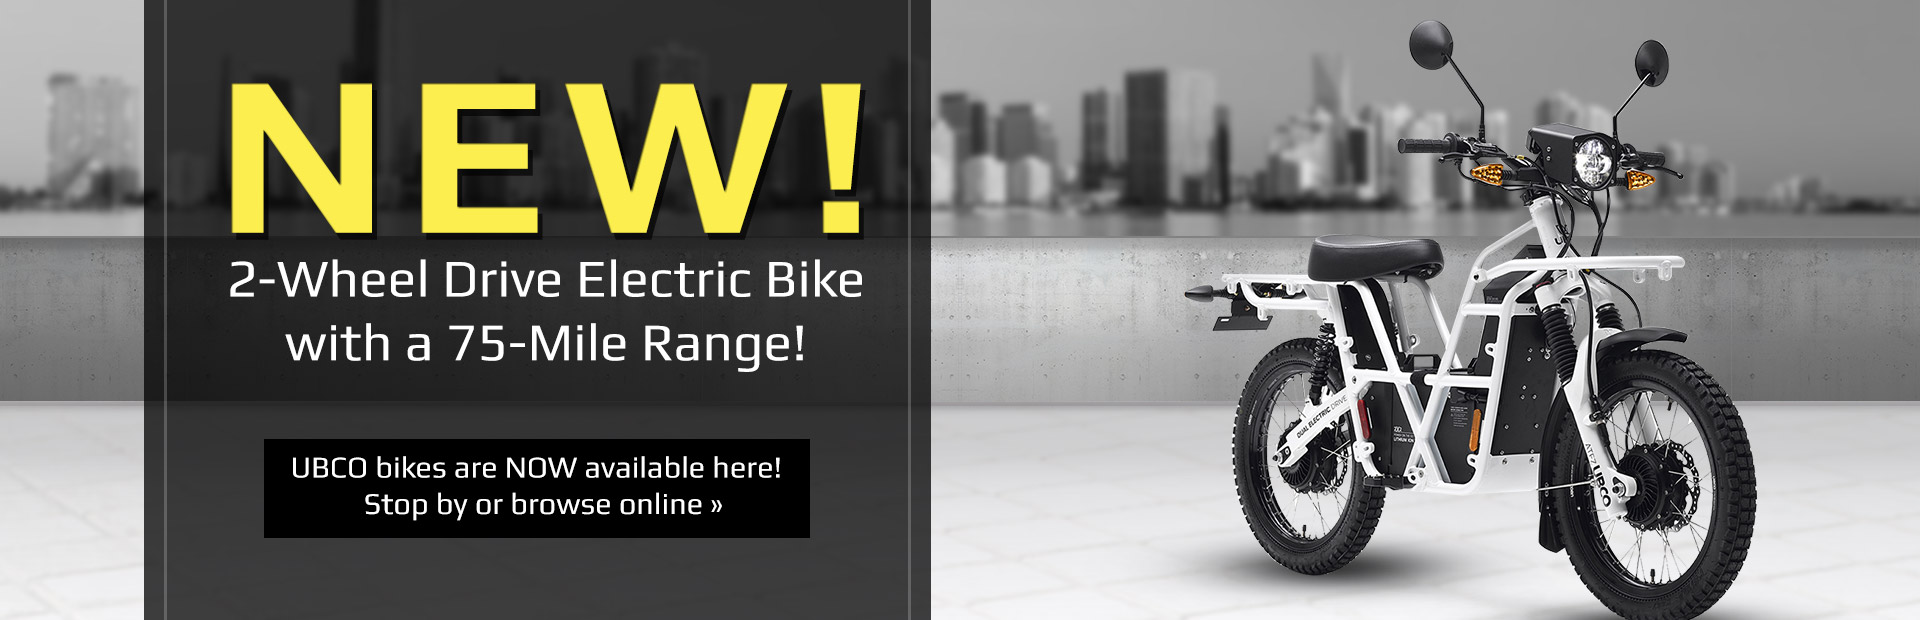 New UBCO 2-wheel drive electric bike with a 75 mile range are now available at Absolute Motosport!  Stop by or click here to browse online.